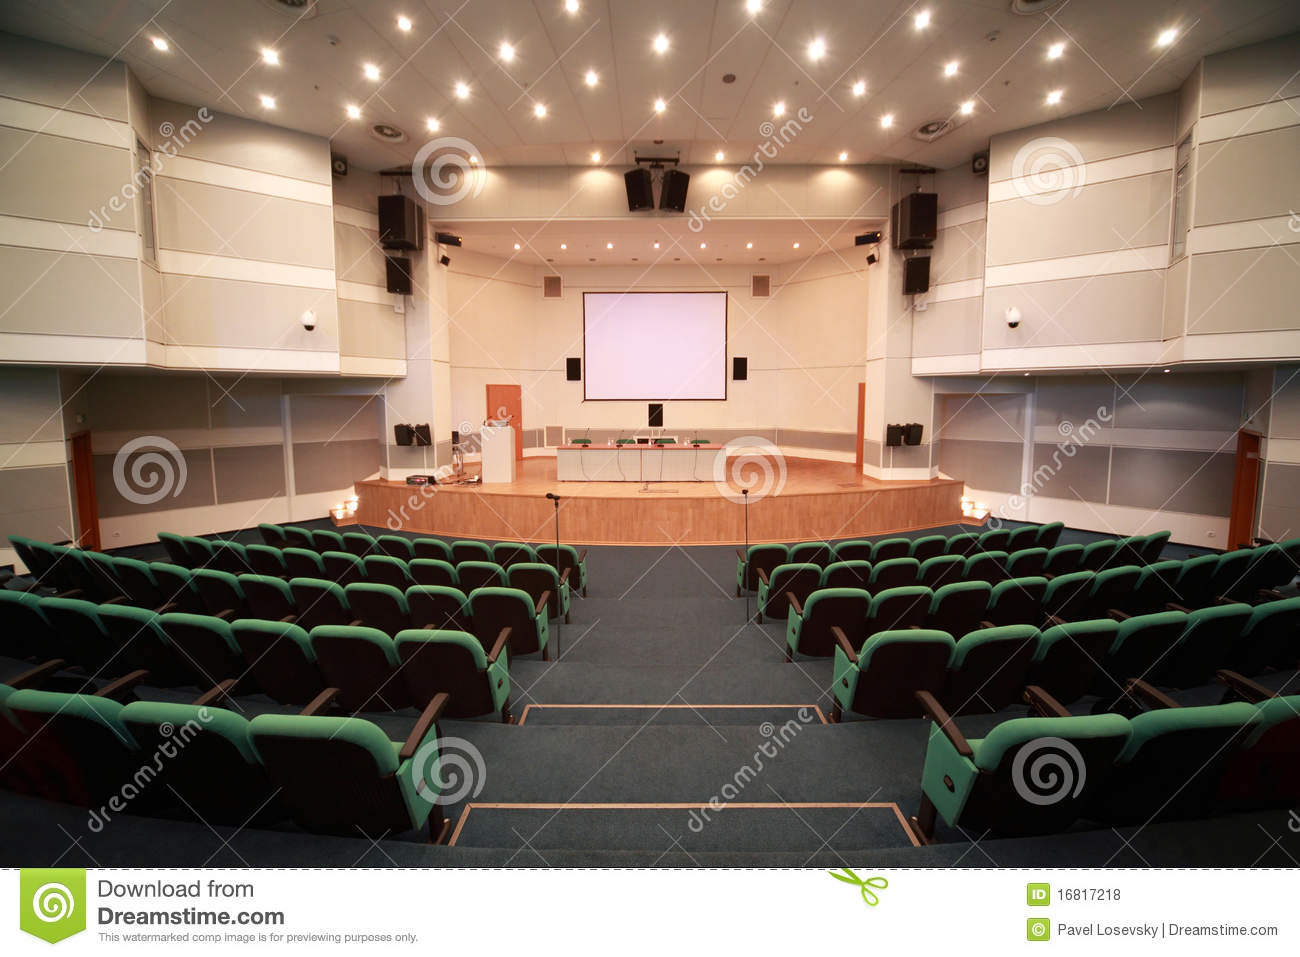 Registration Of Scene And Conference Hall Interior Stock